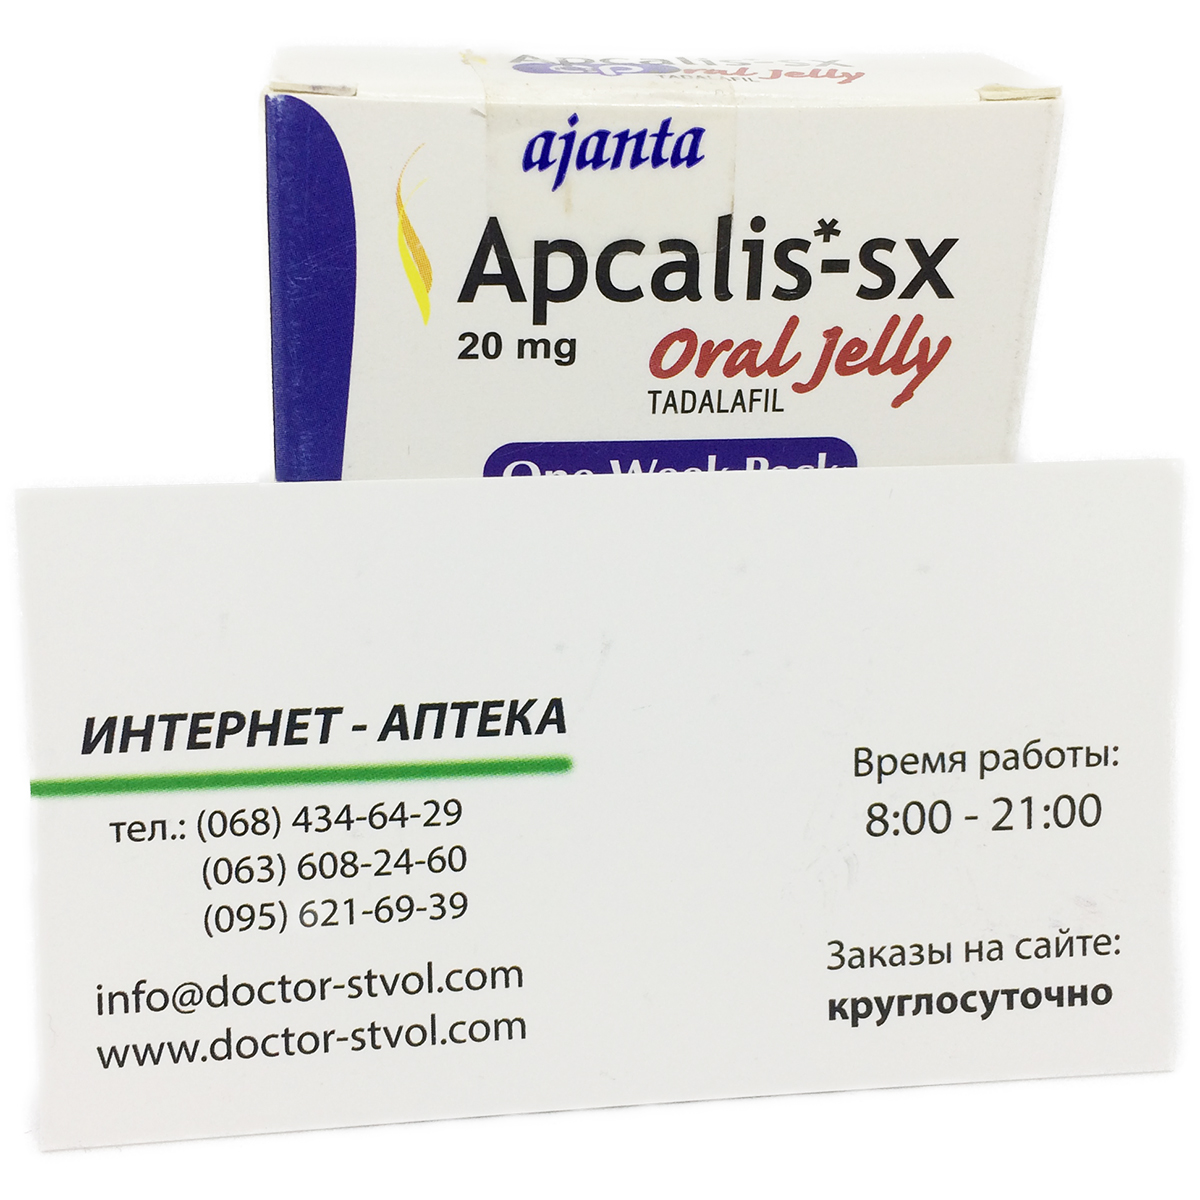 Apcalis-sx Oral Jelly x 7 шт